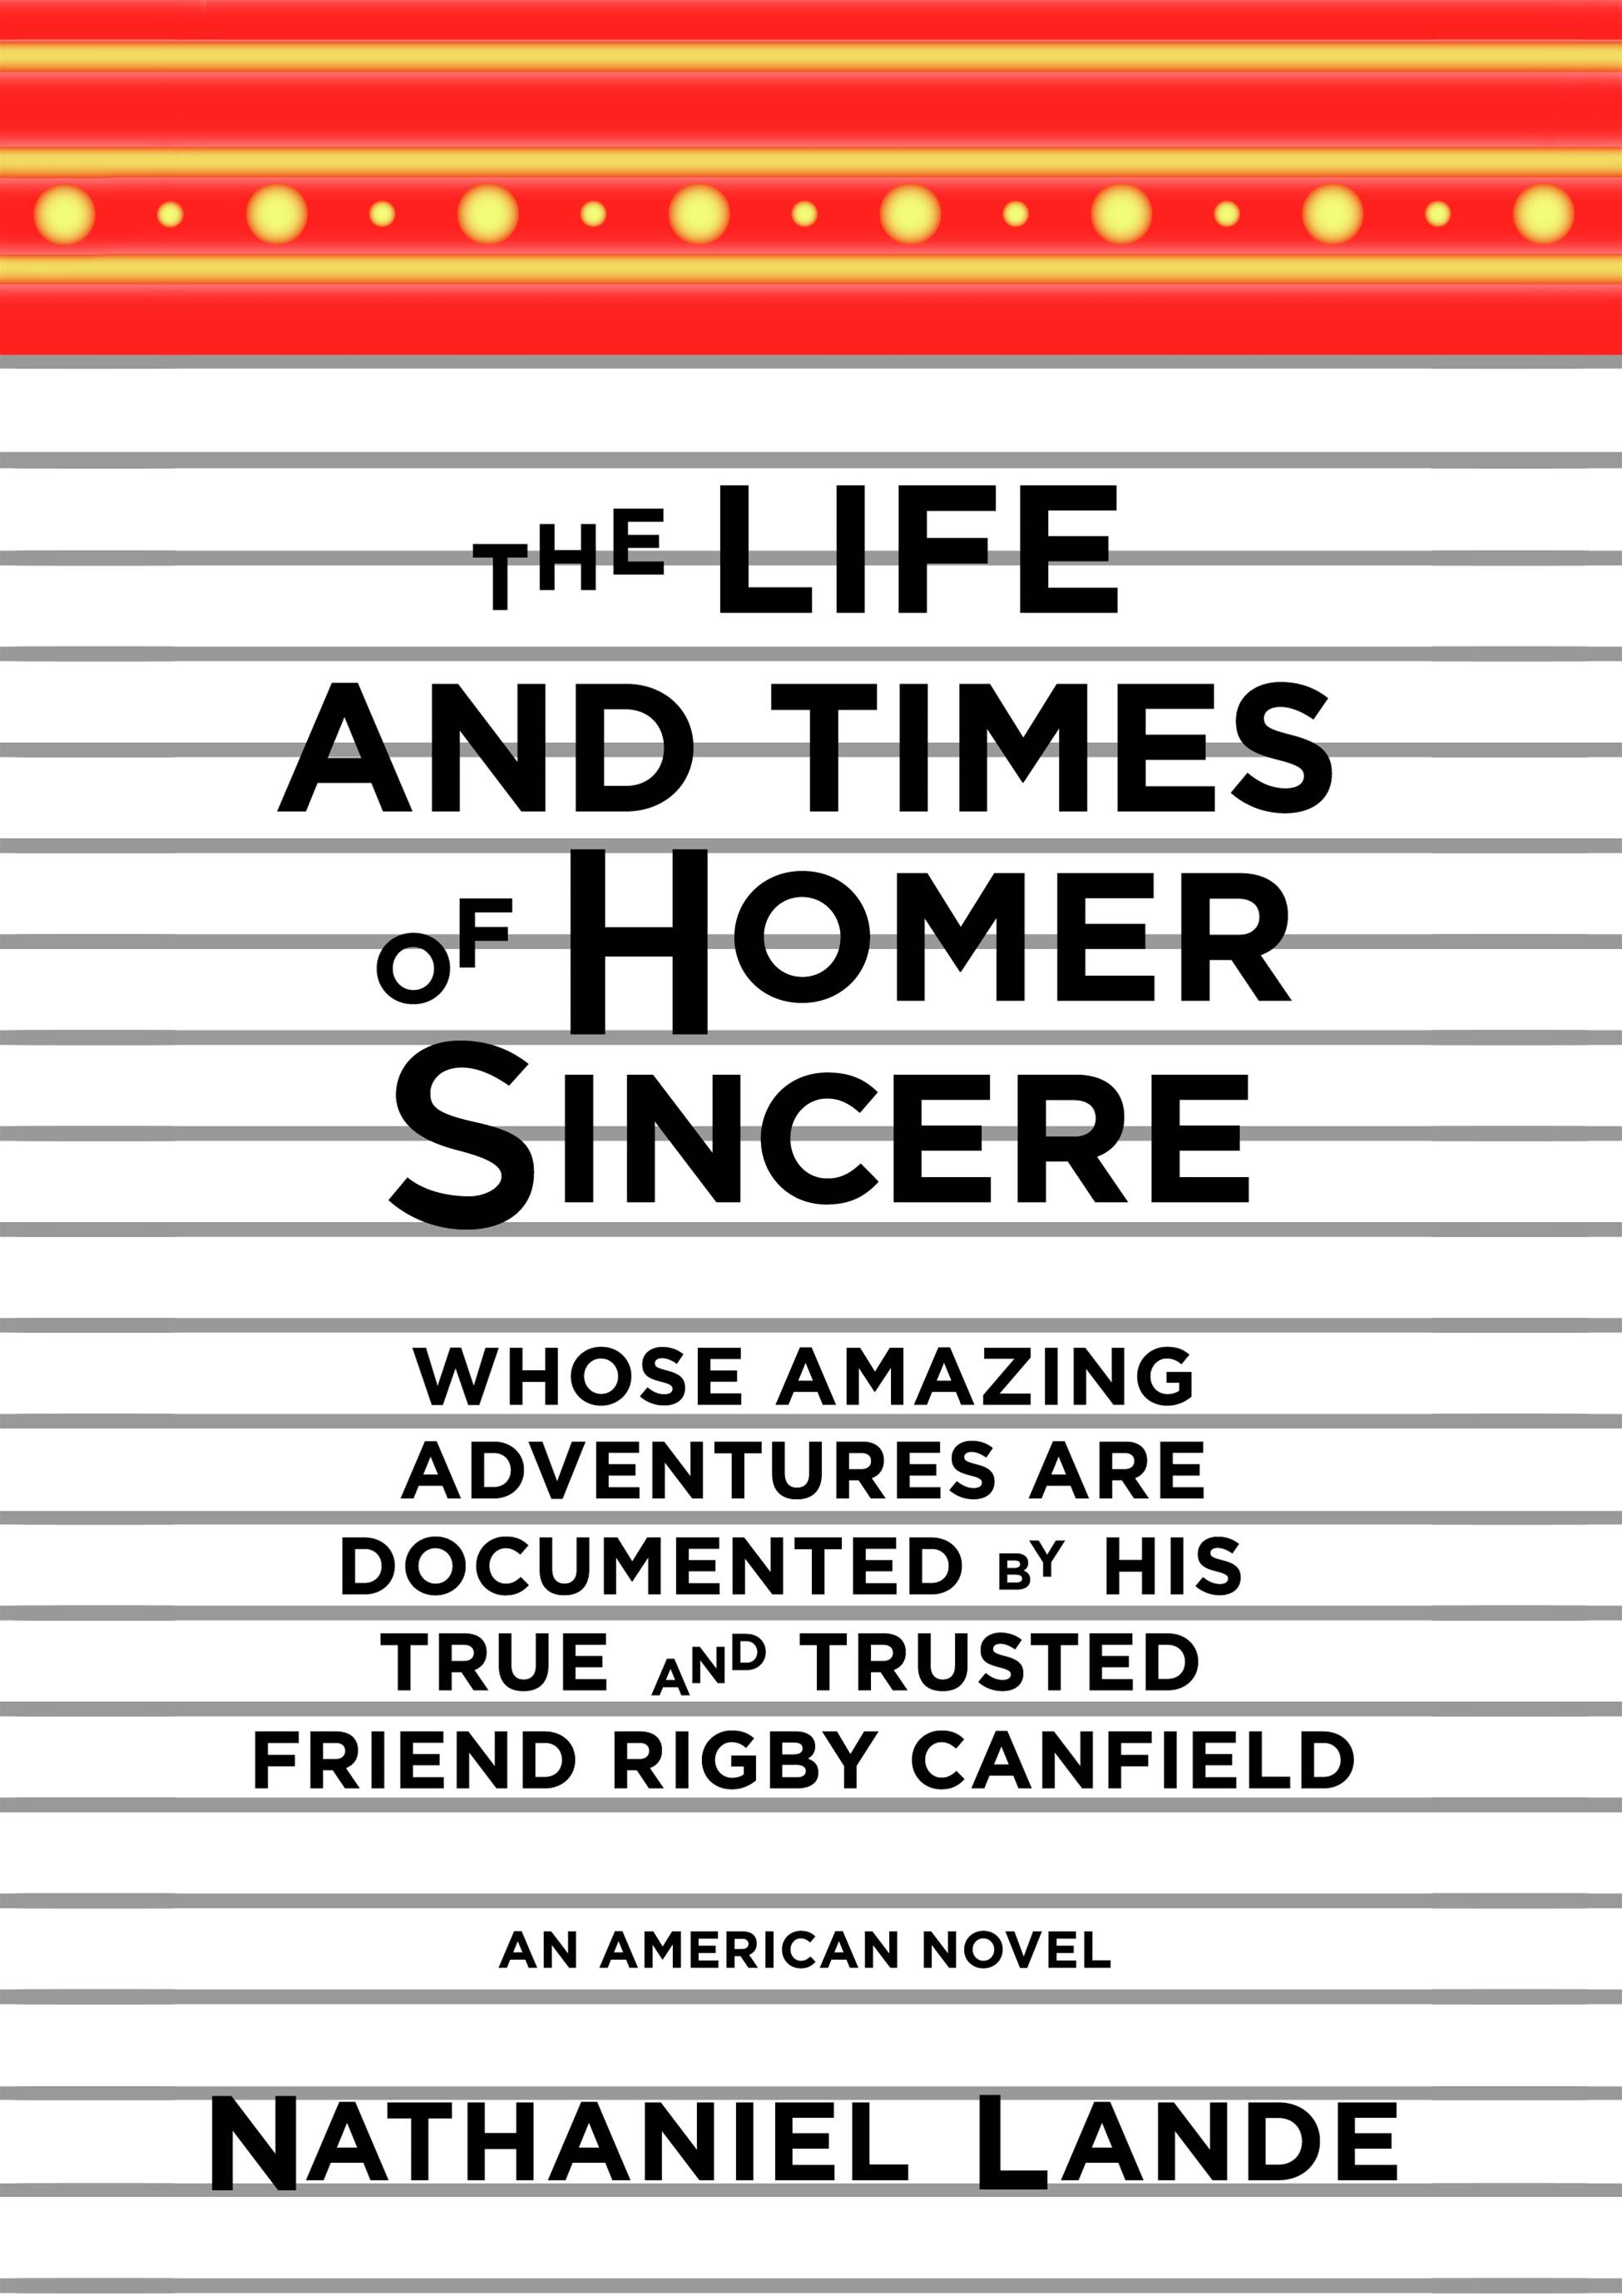 The Life and Times of Homer Sincere Whose Amazing Adventures areDocumented by His True and Trusted Friend Rigby Canfield